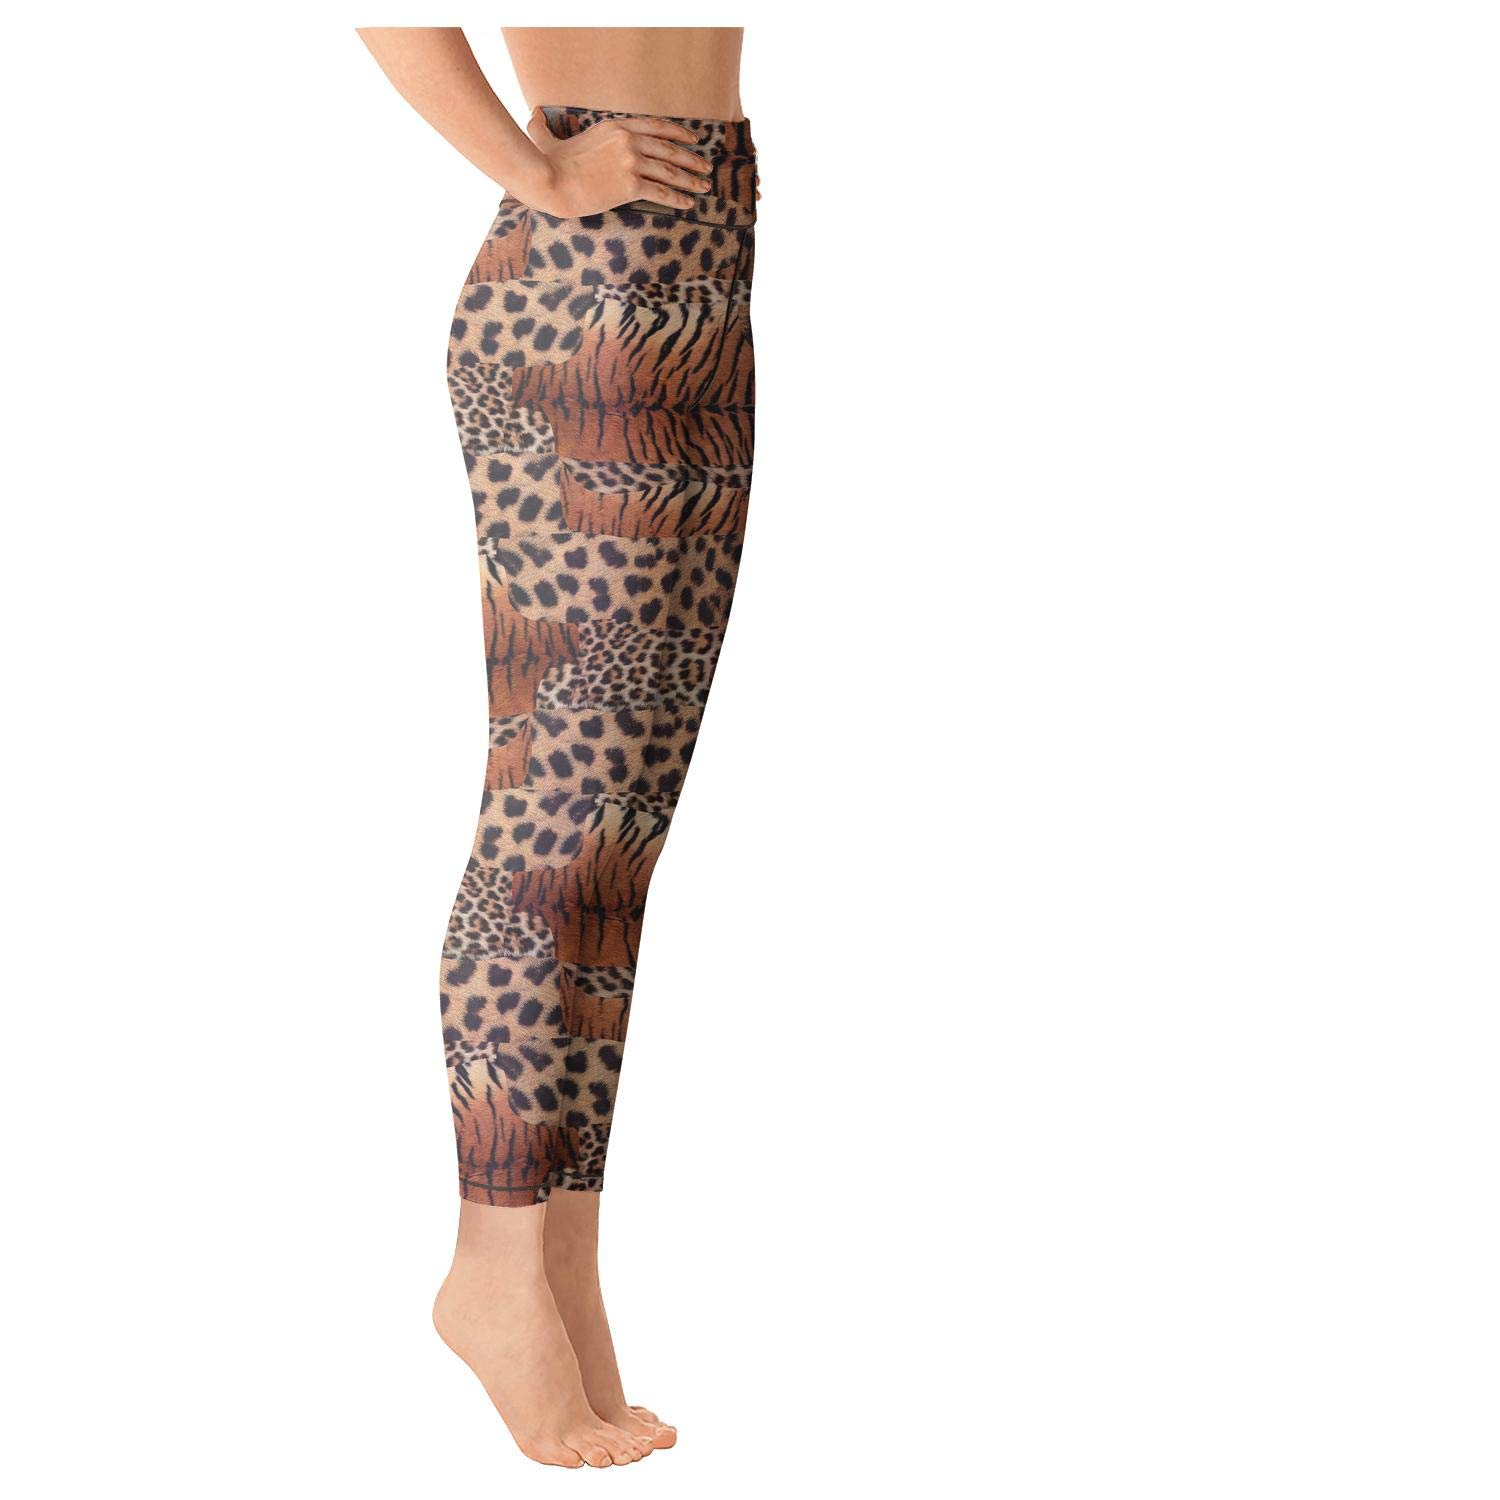 4b01af9a5649a PLOKINC Yoga Pants for Women for Womens Printed Yoga Leopard Cheetah Print  Colorful High Waist Opaque Tights at Amazon Women's Clothing store: